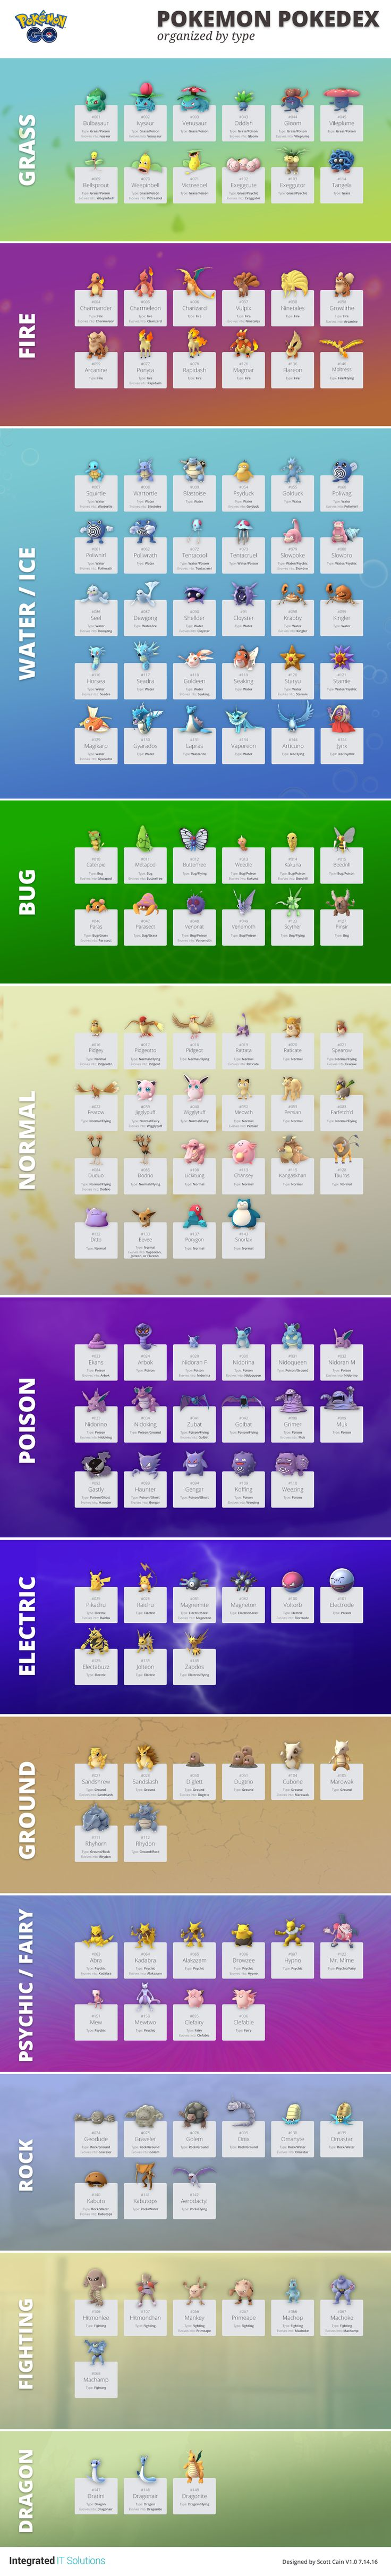 With the Pokemon Go mania going around, we thought we wound set aside some time and put together a helpful list of Pokemon Go characters organized by type and what the evolve into.  View the infographic below.